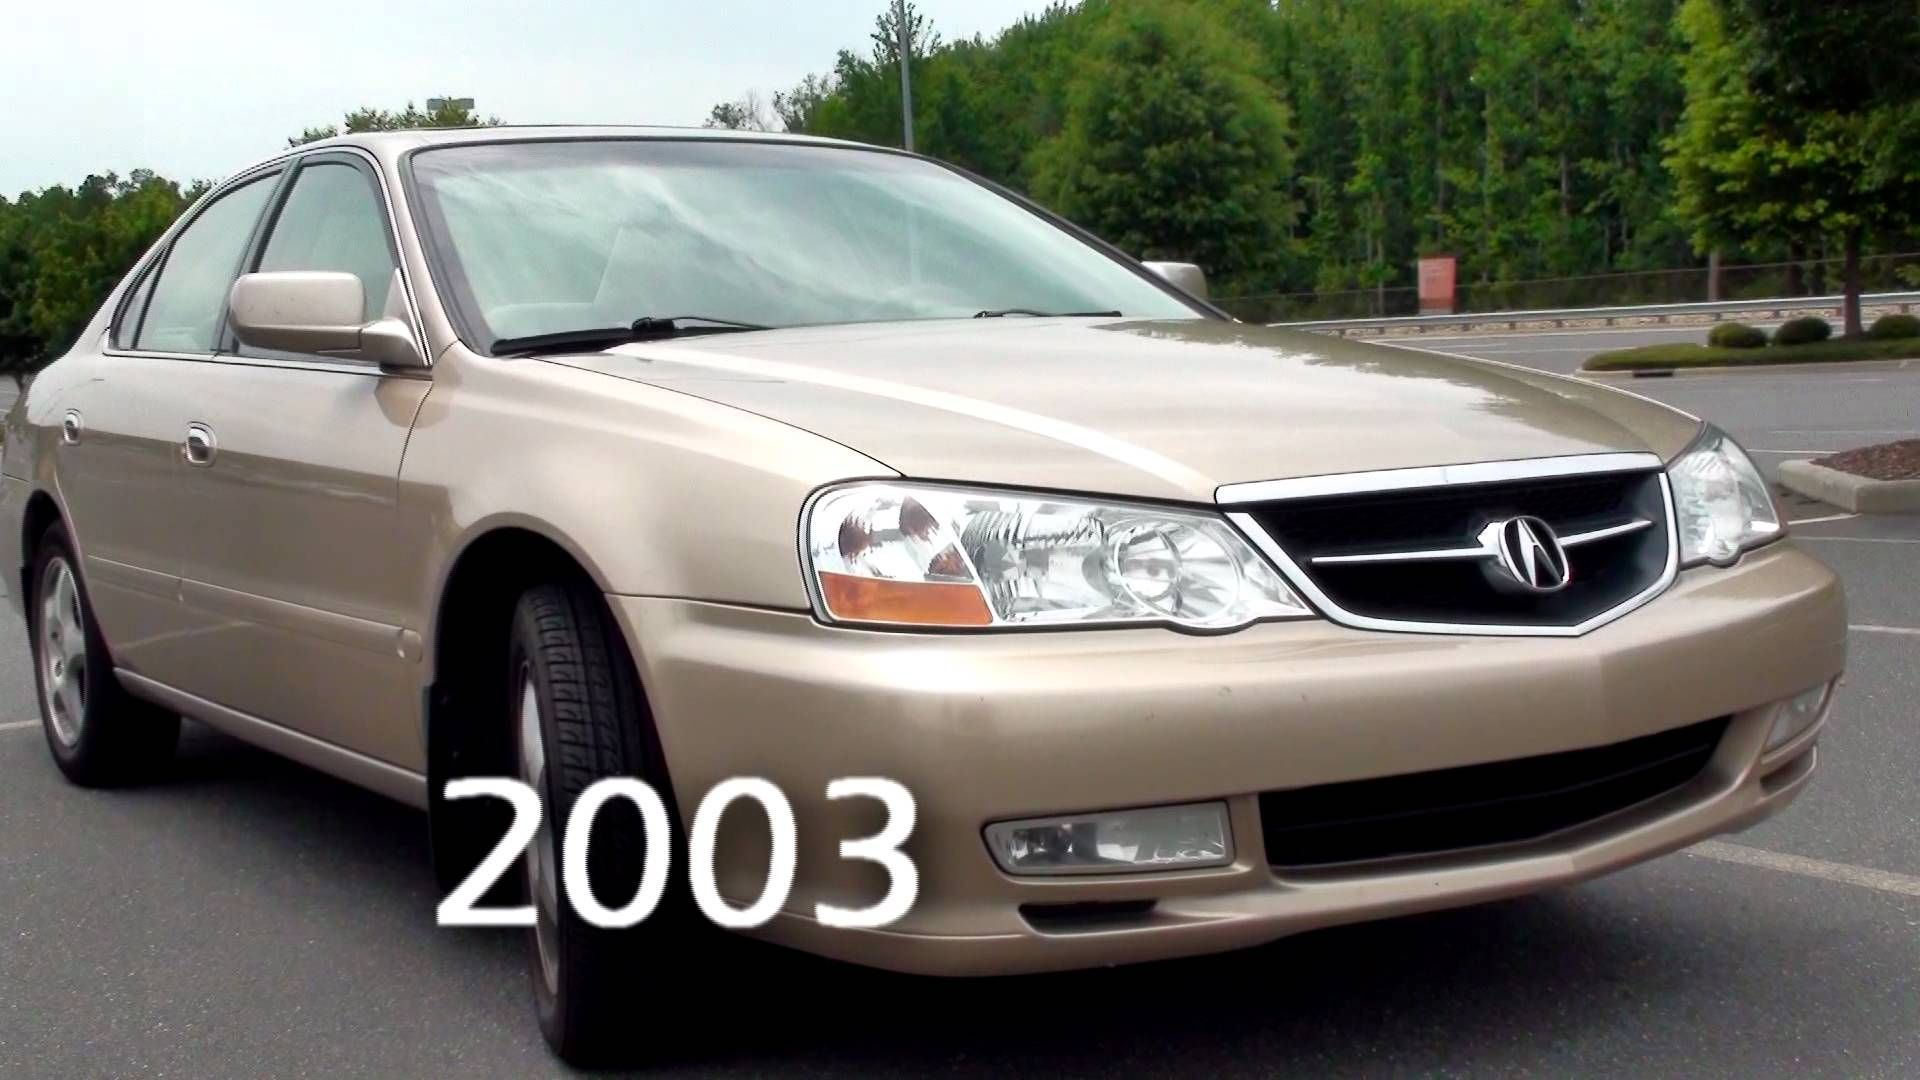 220 Acura TL NAVI 20 620 Times, Top Speed, Specs, Quarter Mile, and ...